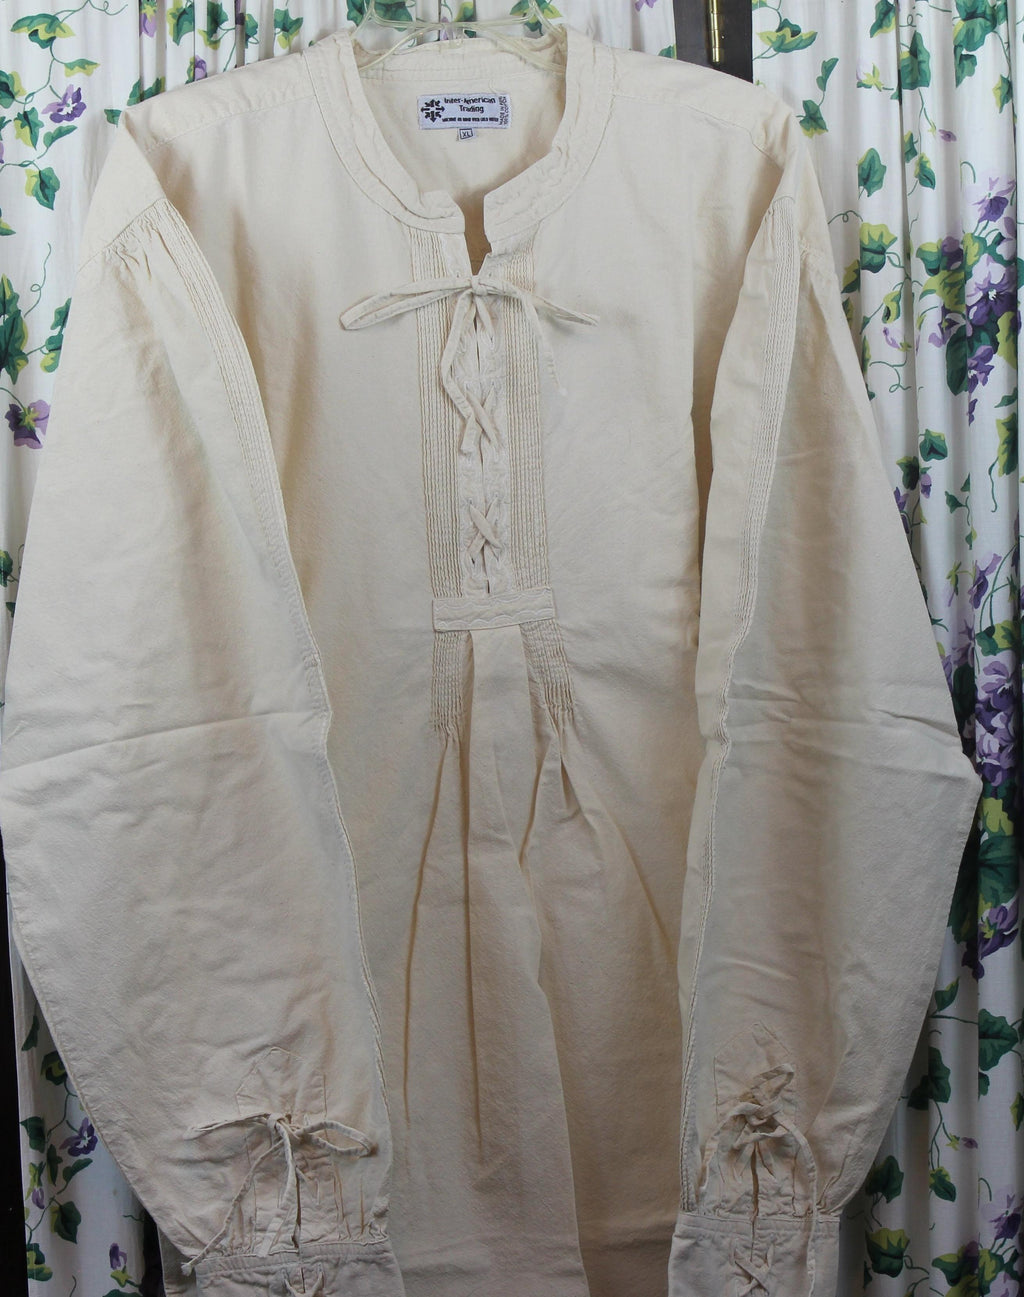 Mens Cotton Early Frontier Shirt With Lace Front and Lace Cuffs - Blanche's Place